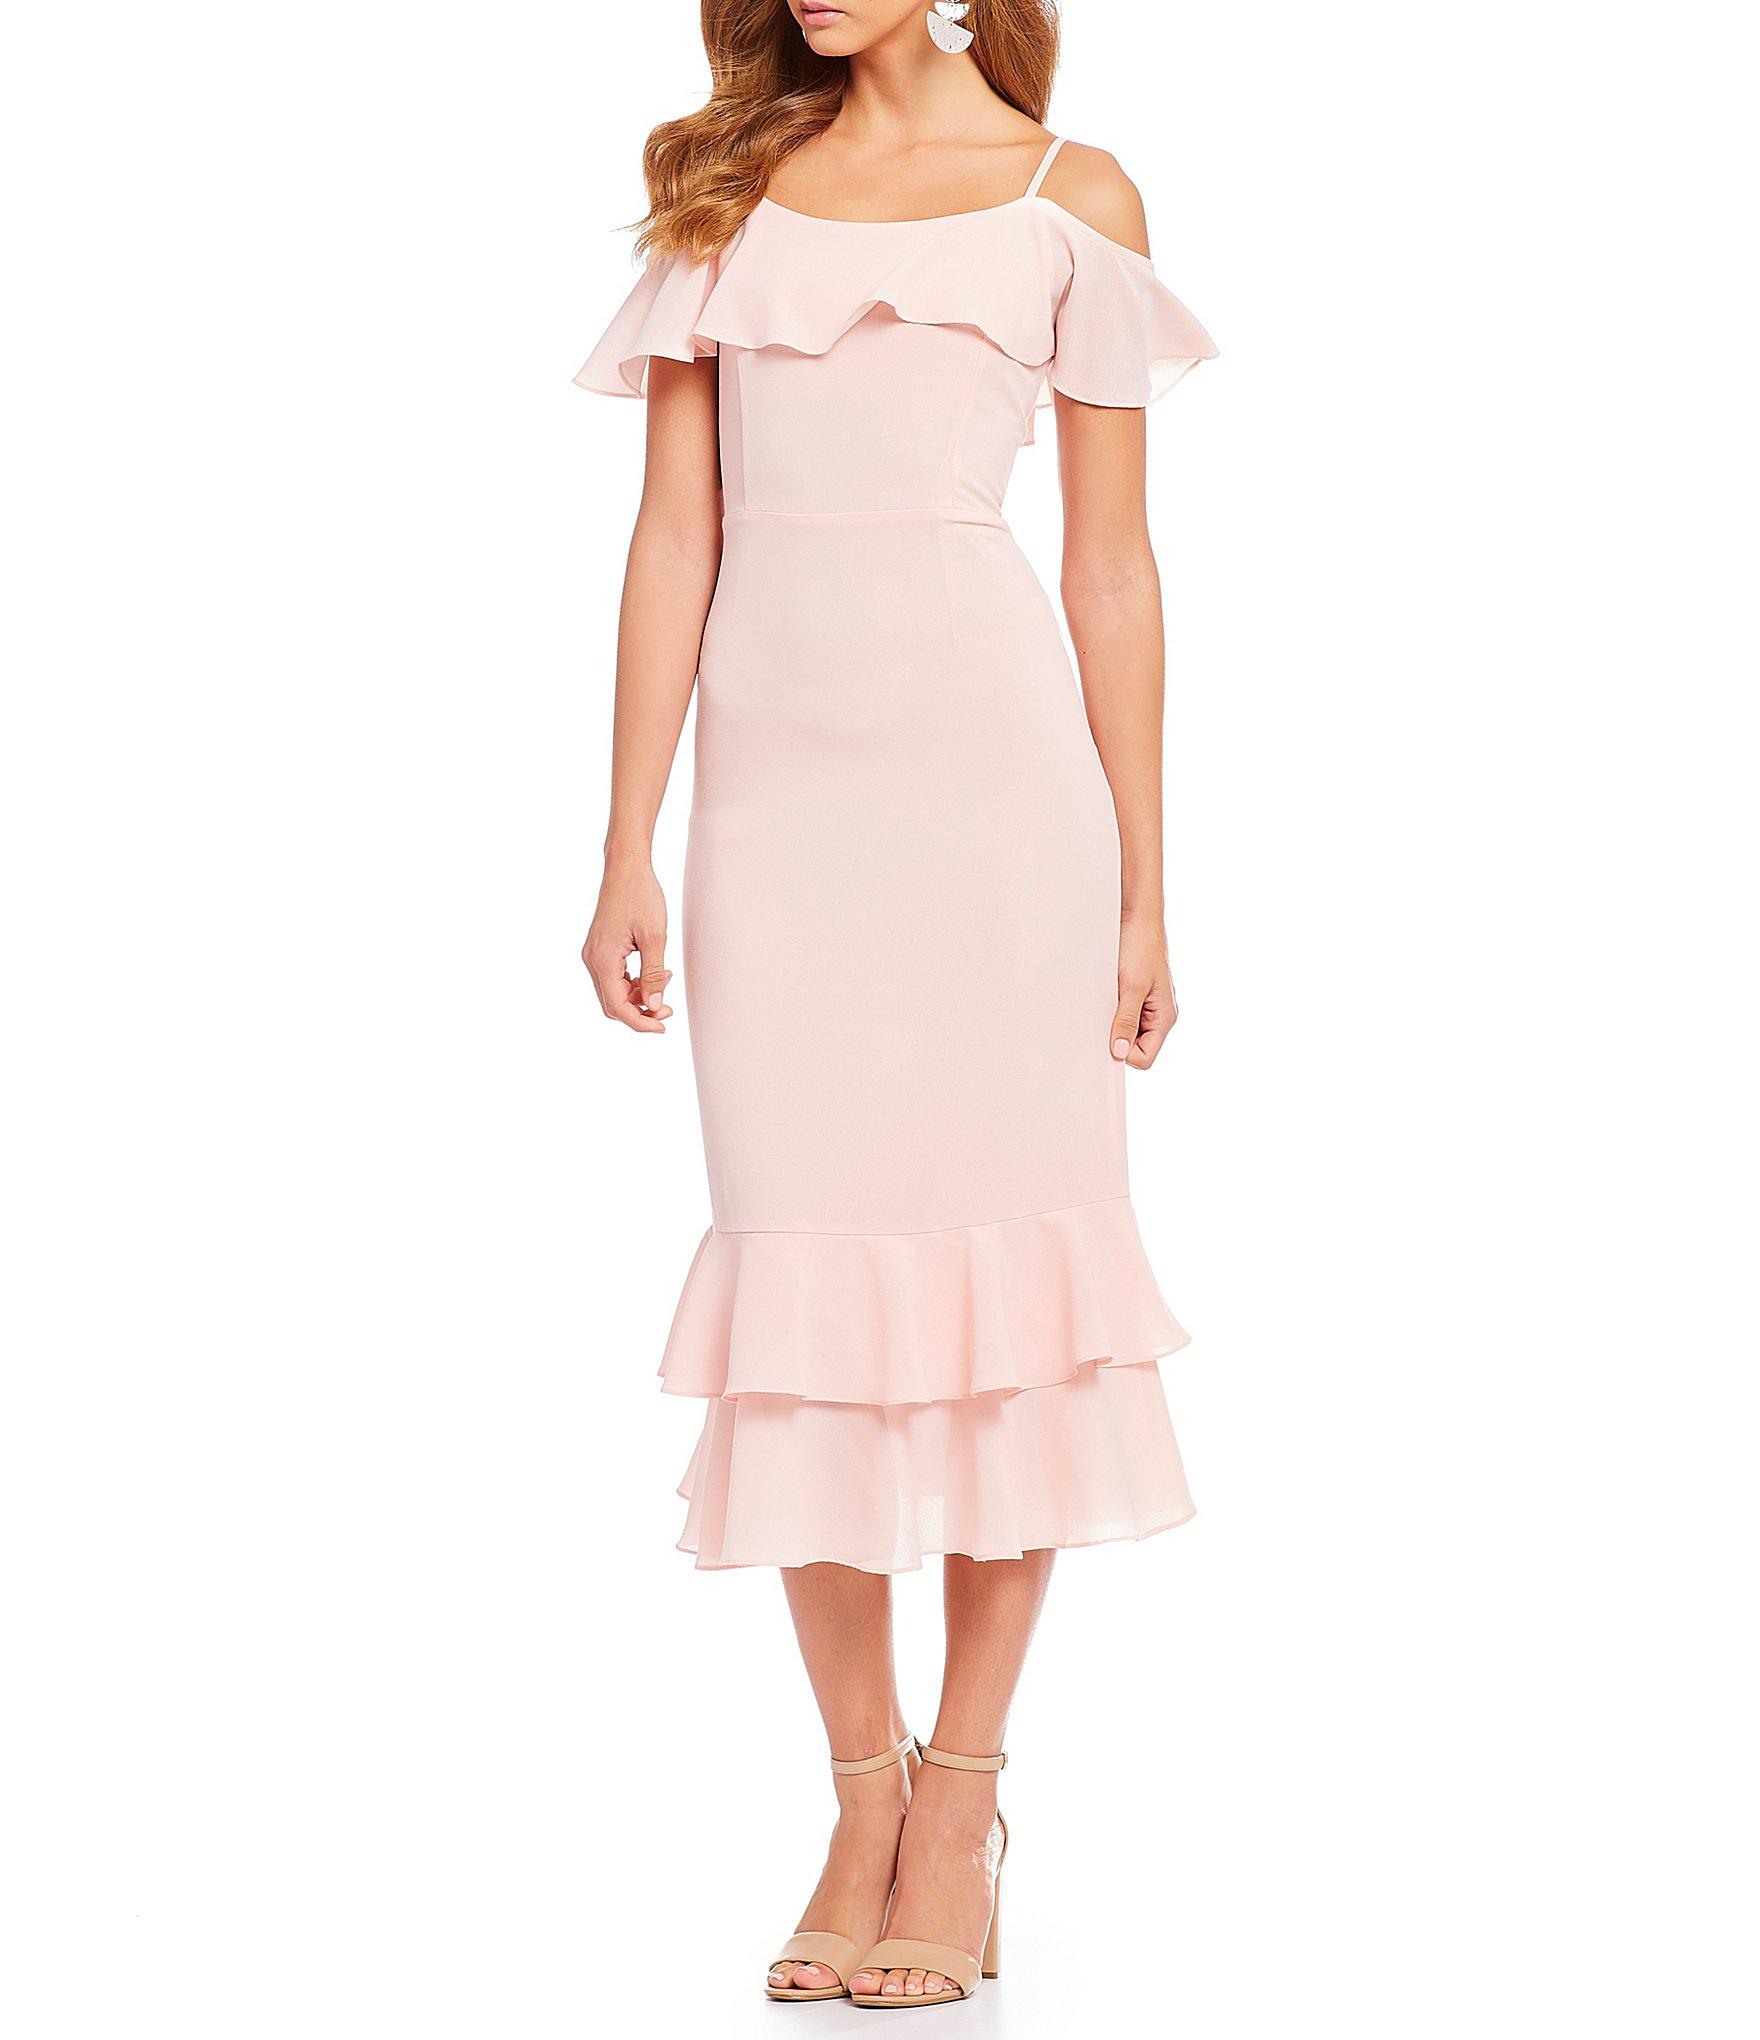 ff6ee5ccd63 Lyst - Sugarlips Ruffle Hem Cold Shoulder Midi Dress in Pink